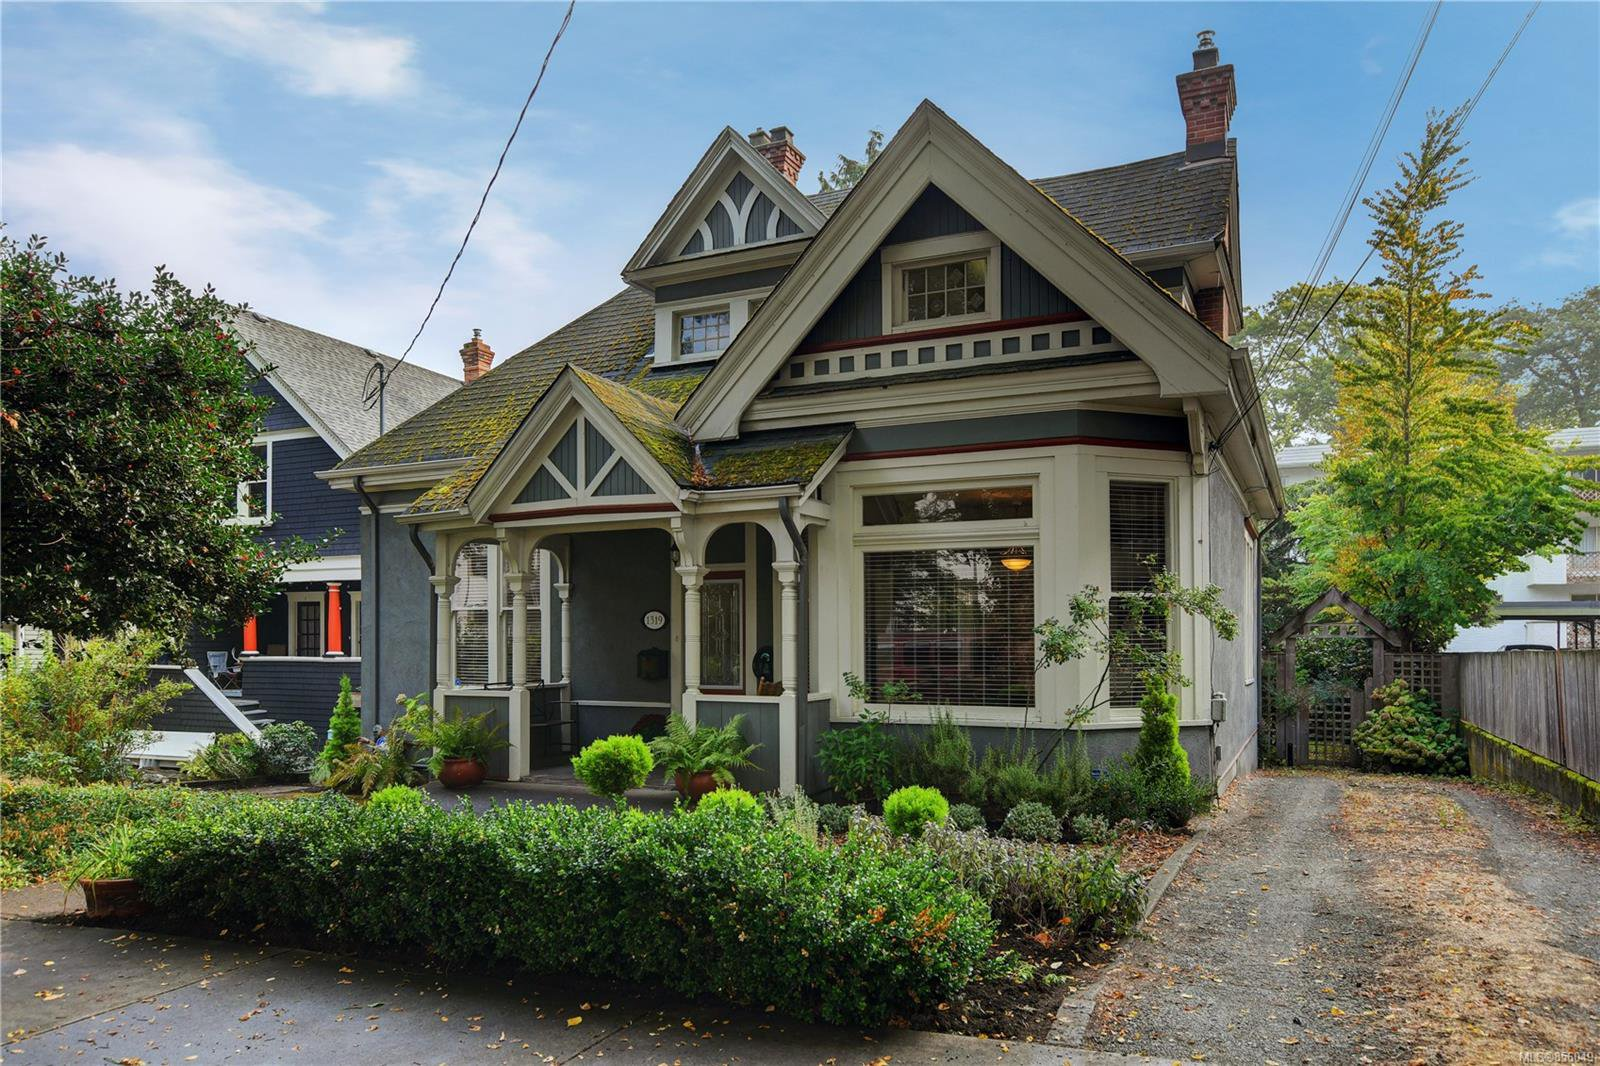 Wonderful character home with gorgeous street appeal!